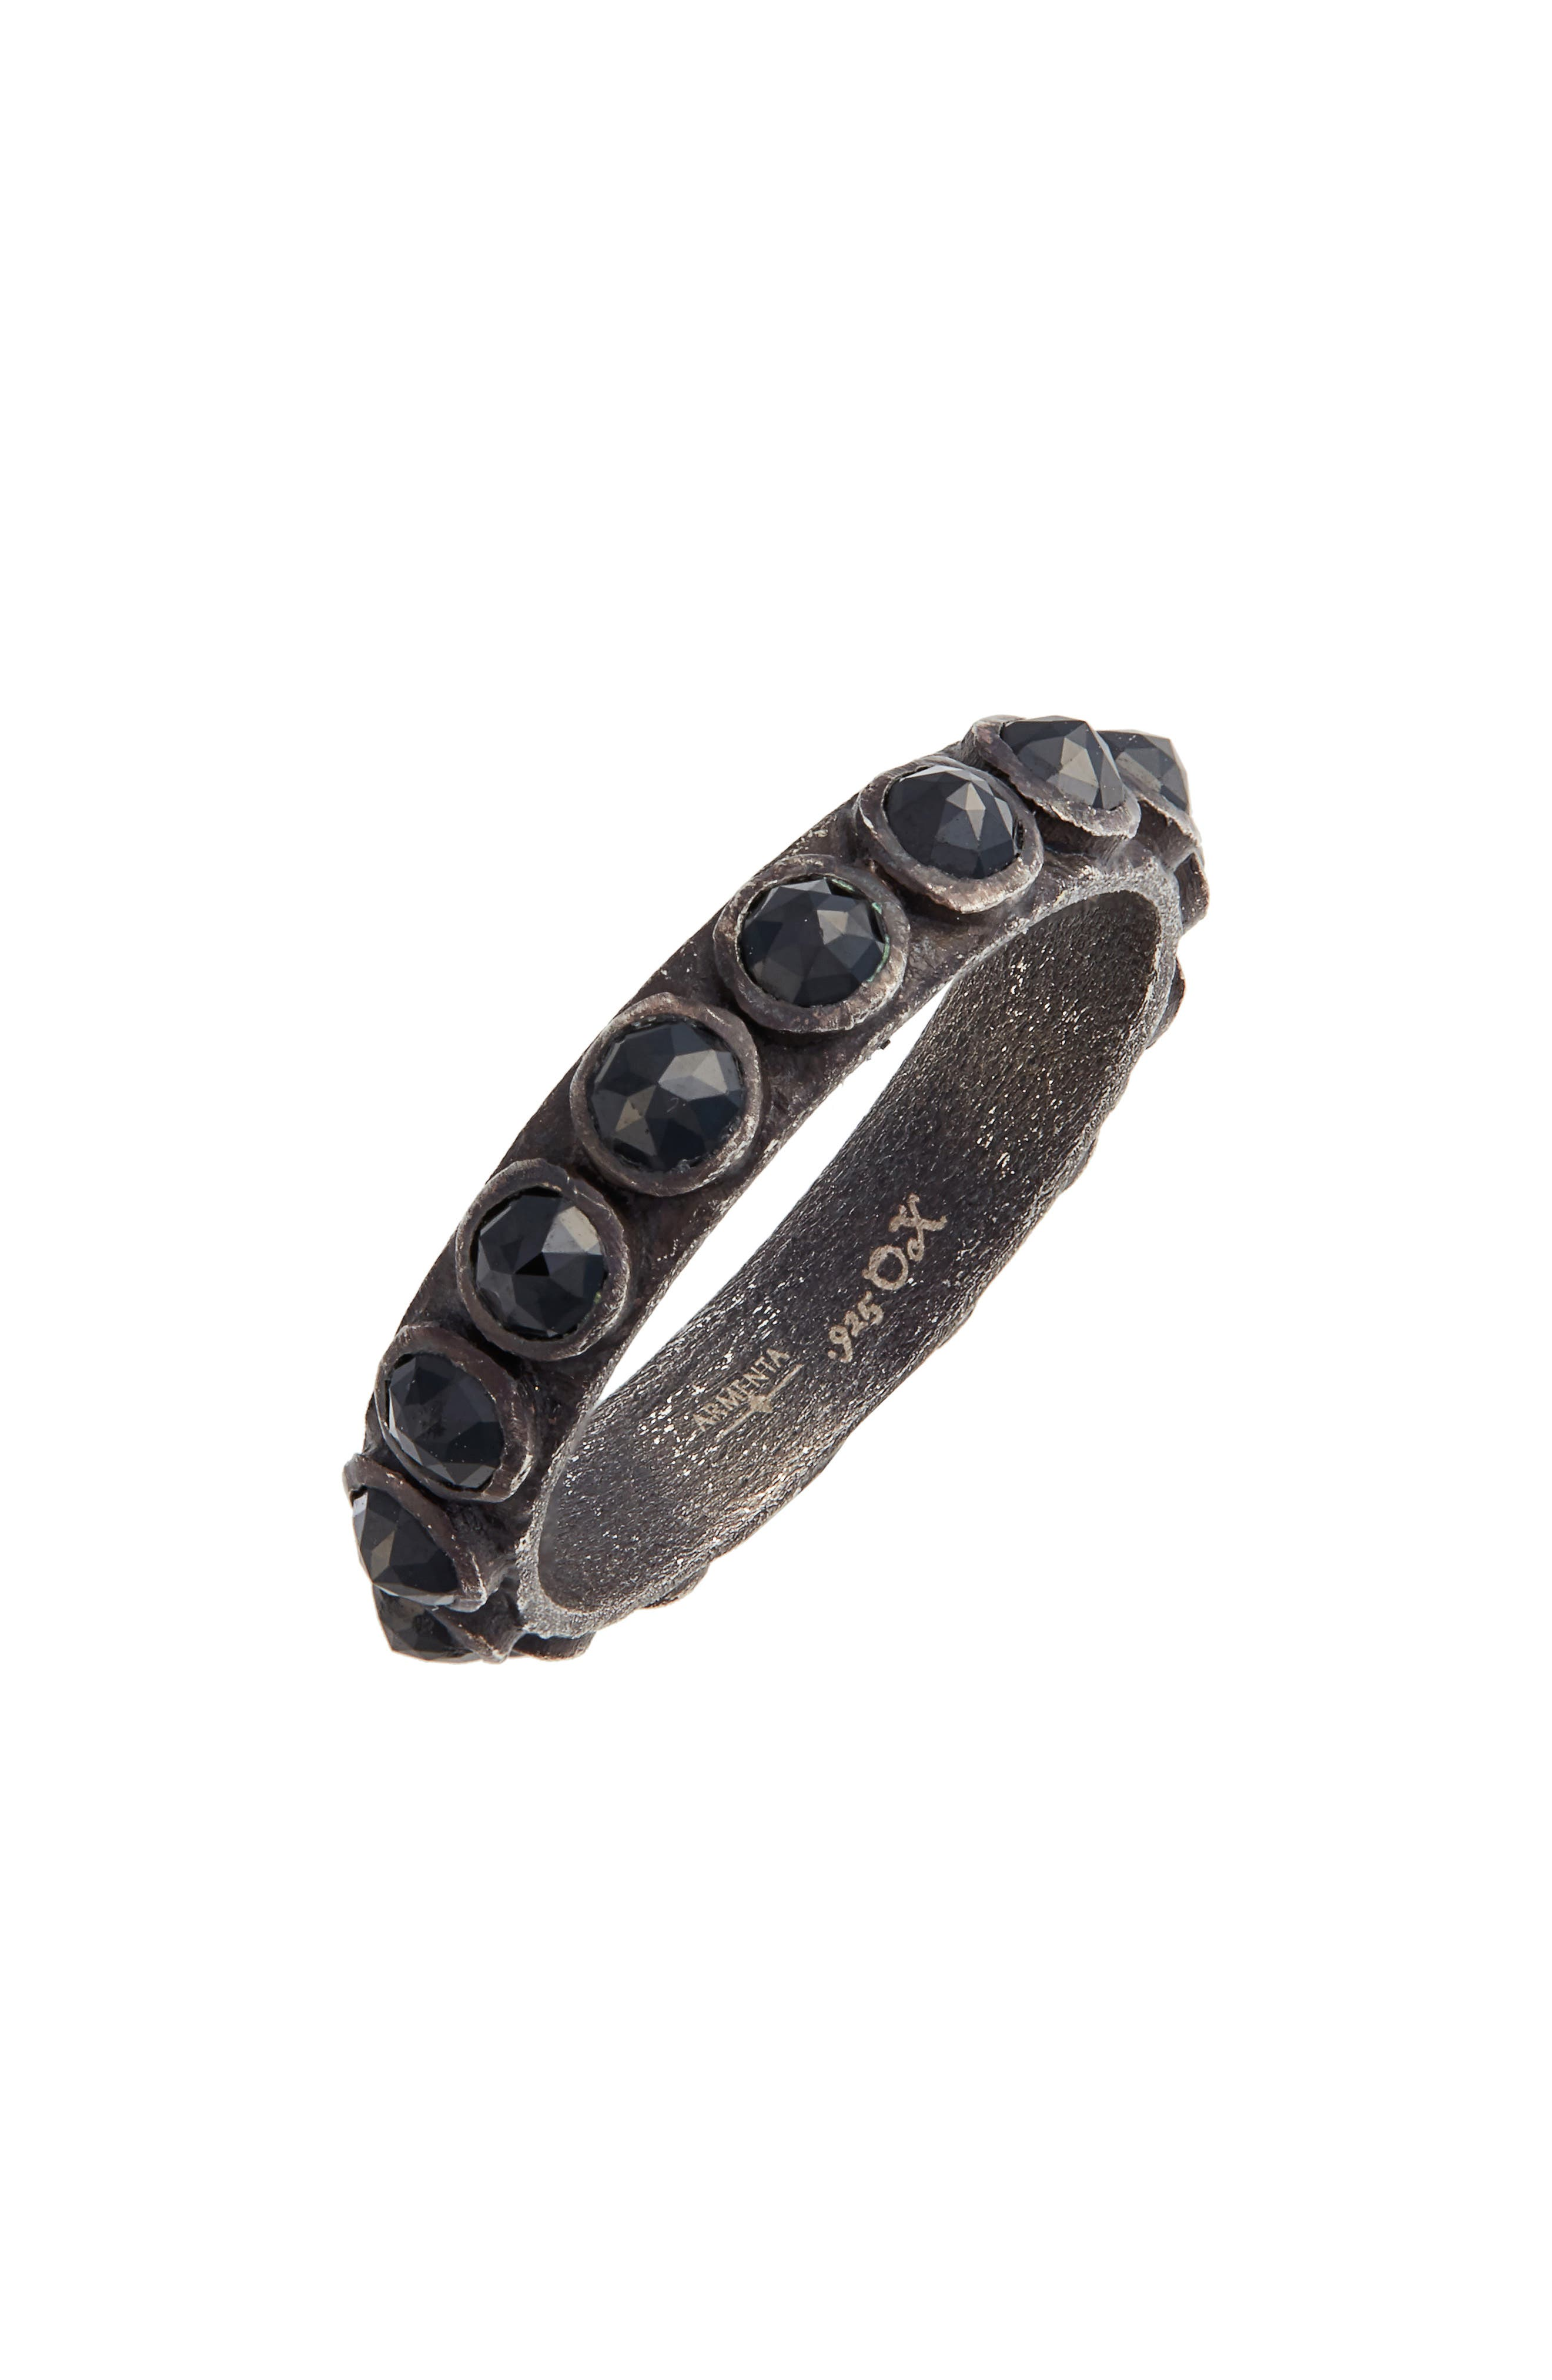 New World Black Spinel Sterling Silver Stackable Ring,                             Main thumbnail 1, color,                             Blackened Silver